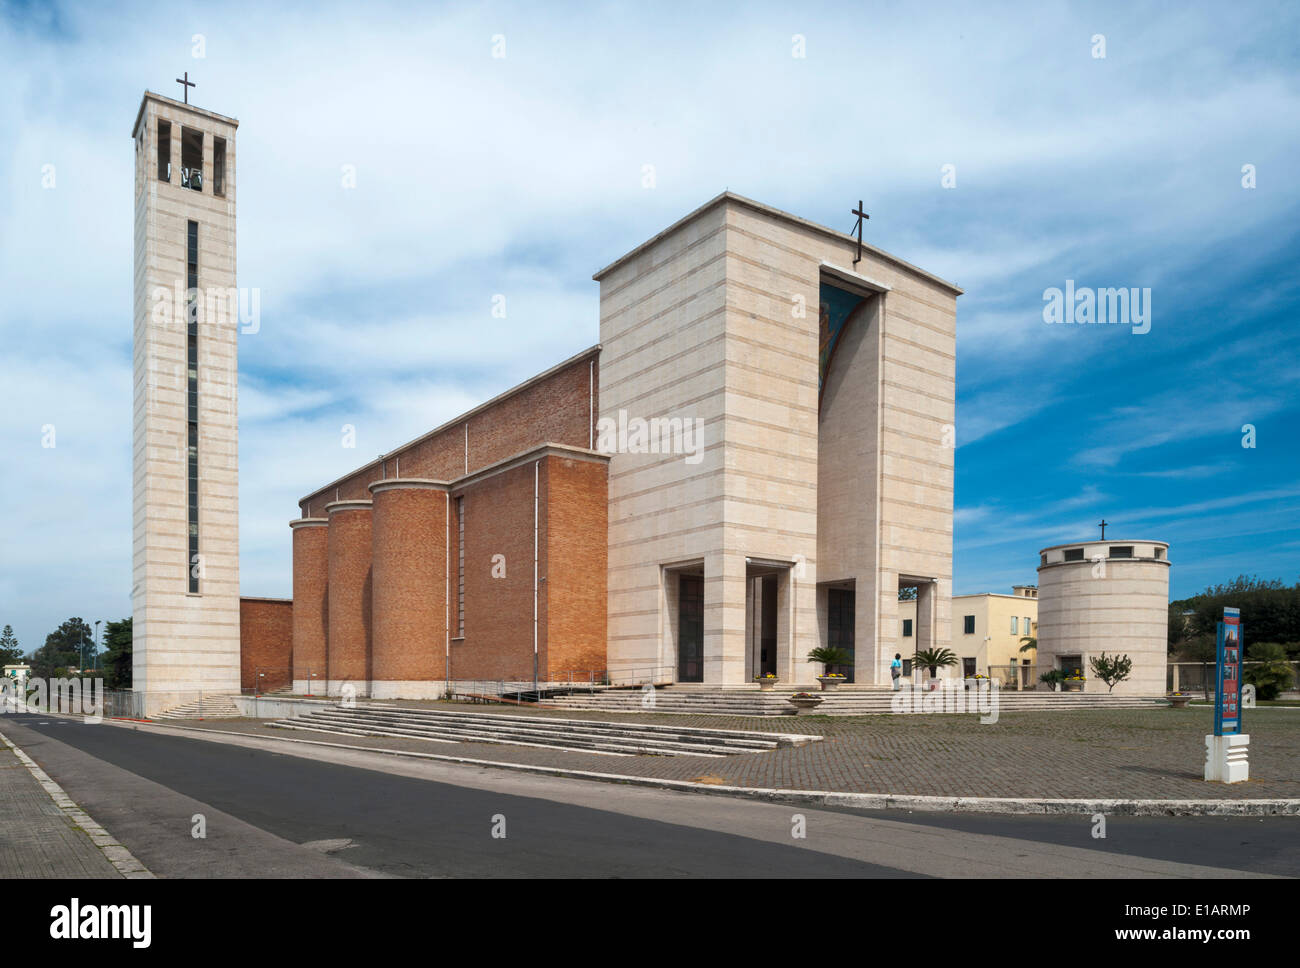 Church with a tower, 1935, monumental architecture, Sabaudia, Lazio, Italy - Stock Image